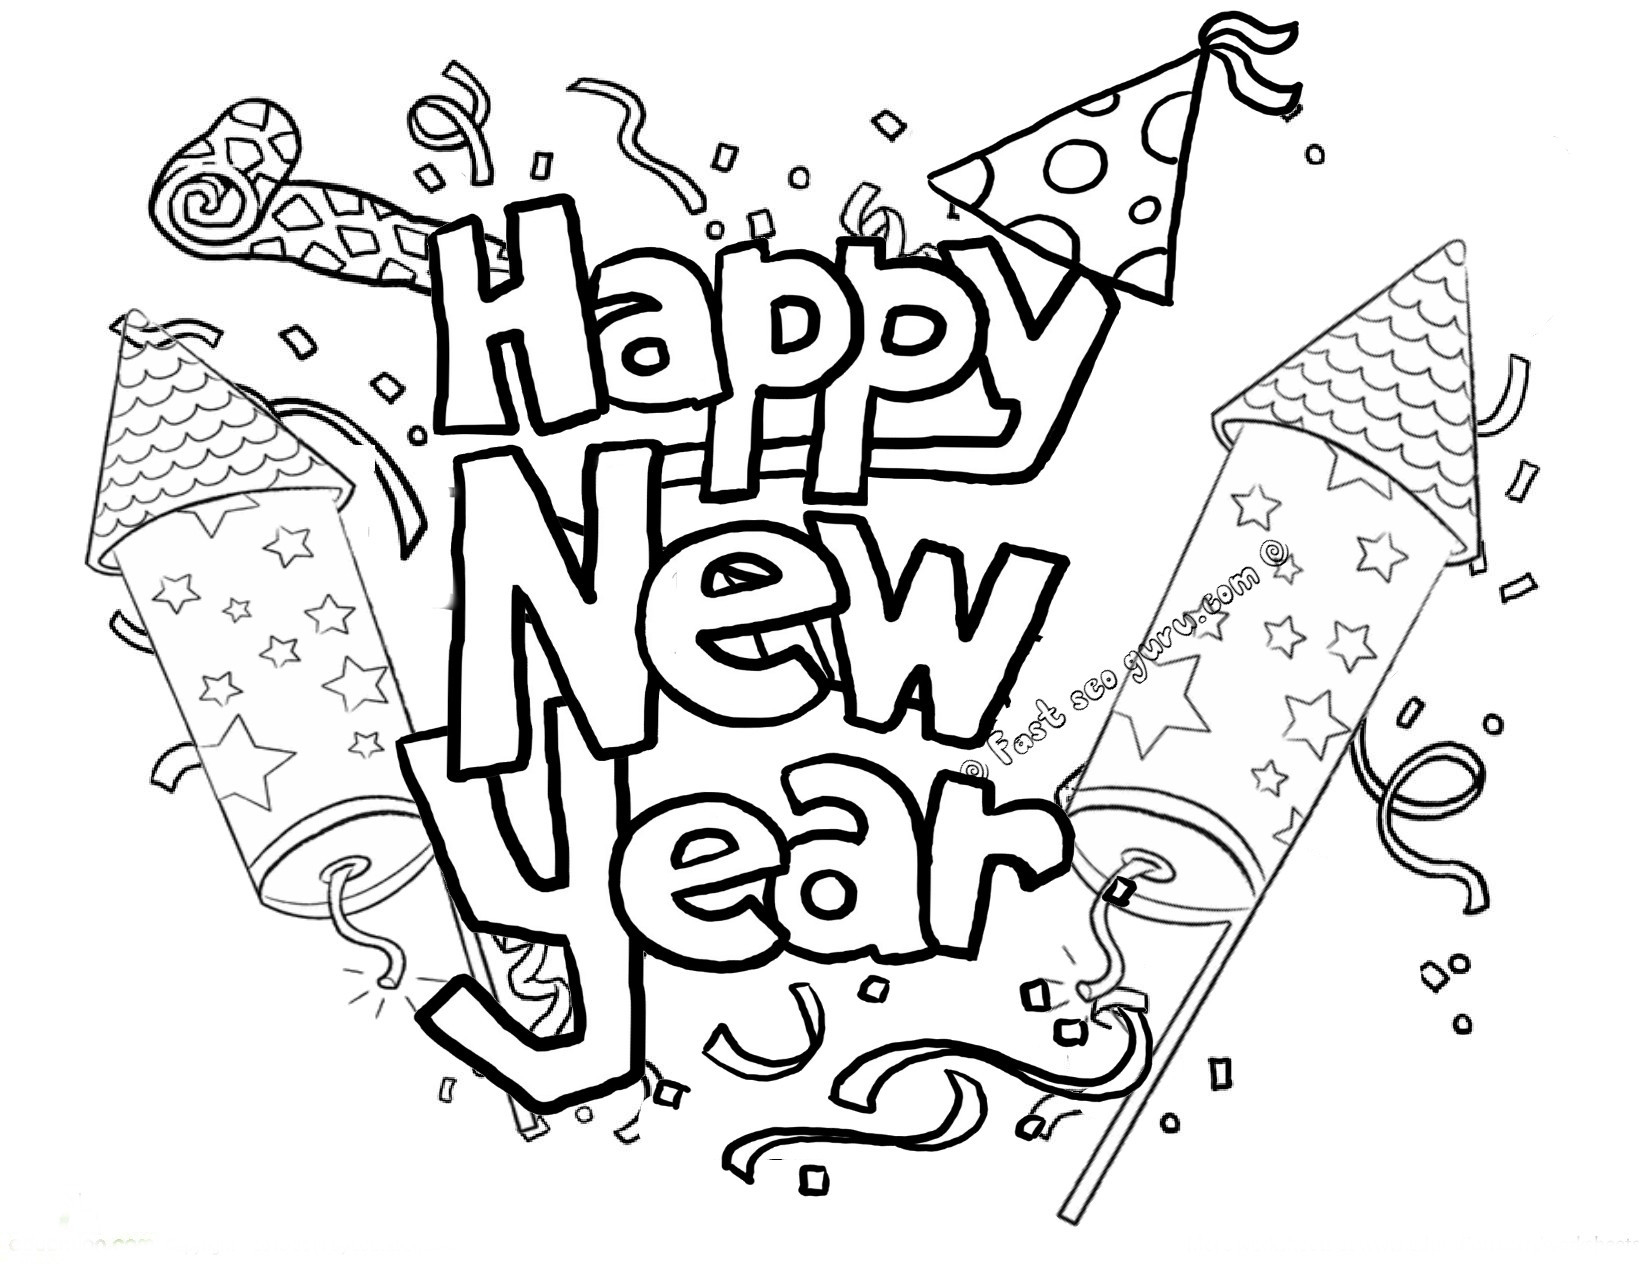 Firework Coloring Pages  Printable 11i - To print for your project